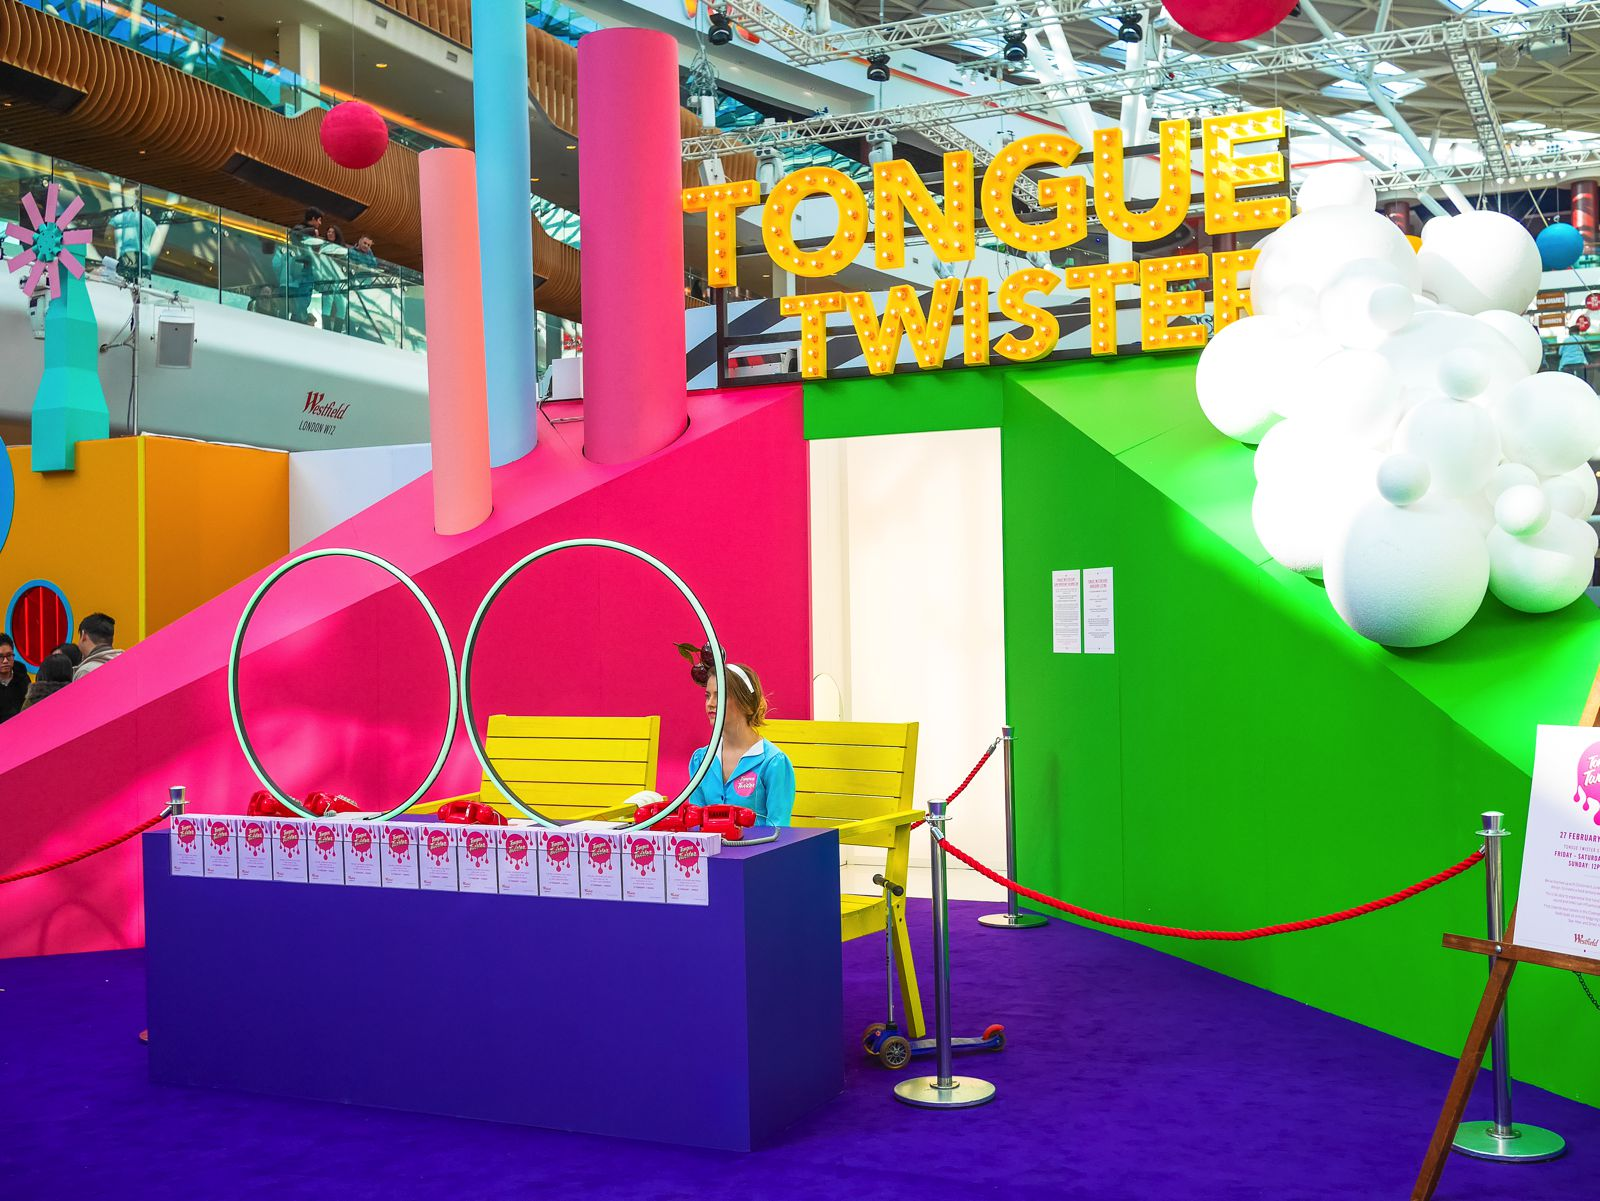 This Is A Really Fun Thing To Do In London! Tongue Twister, London, White City, Westfield (1)